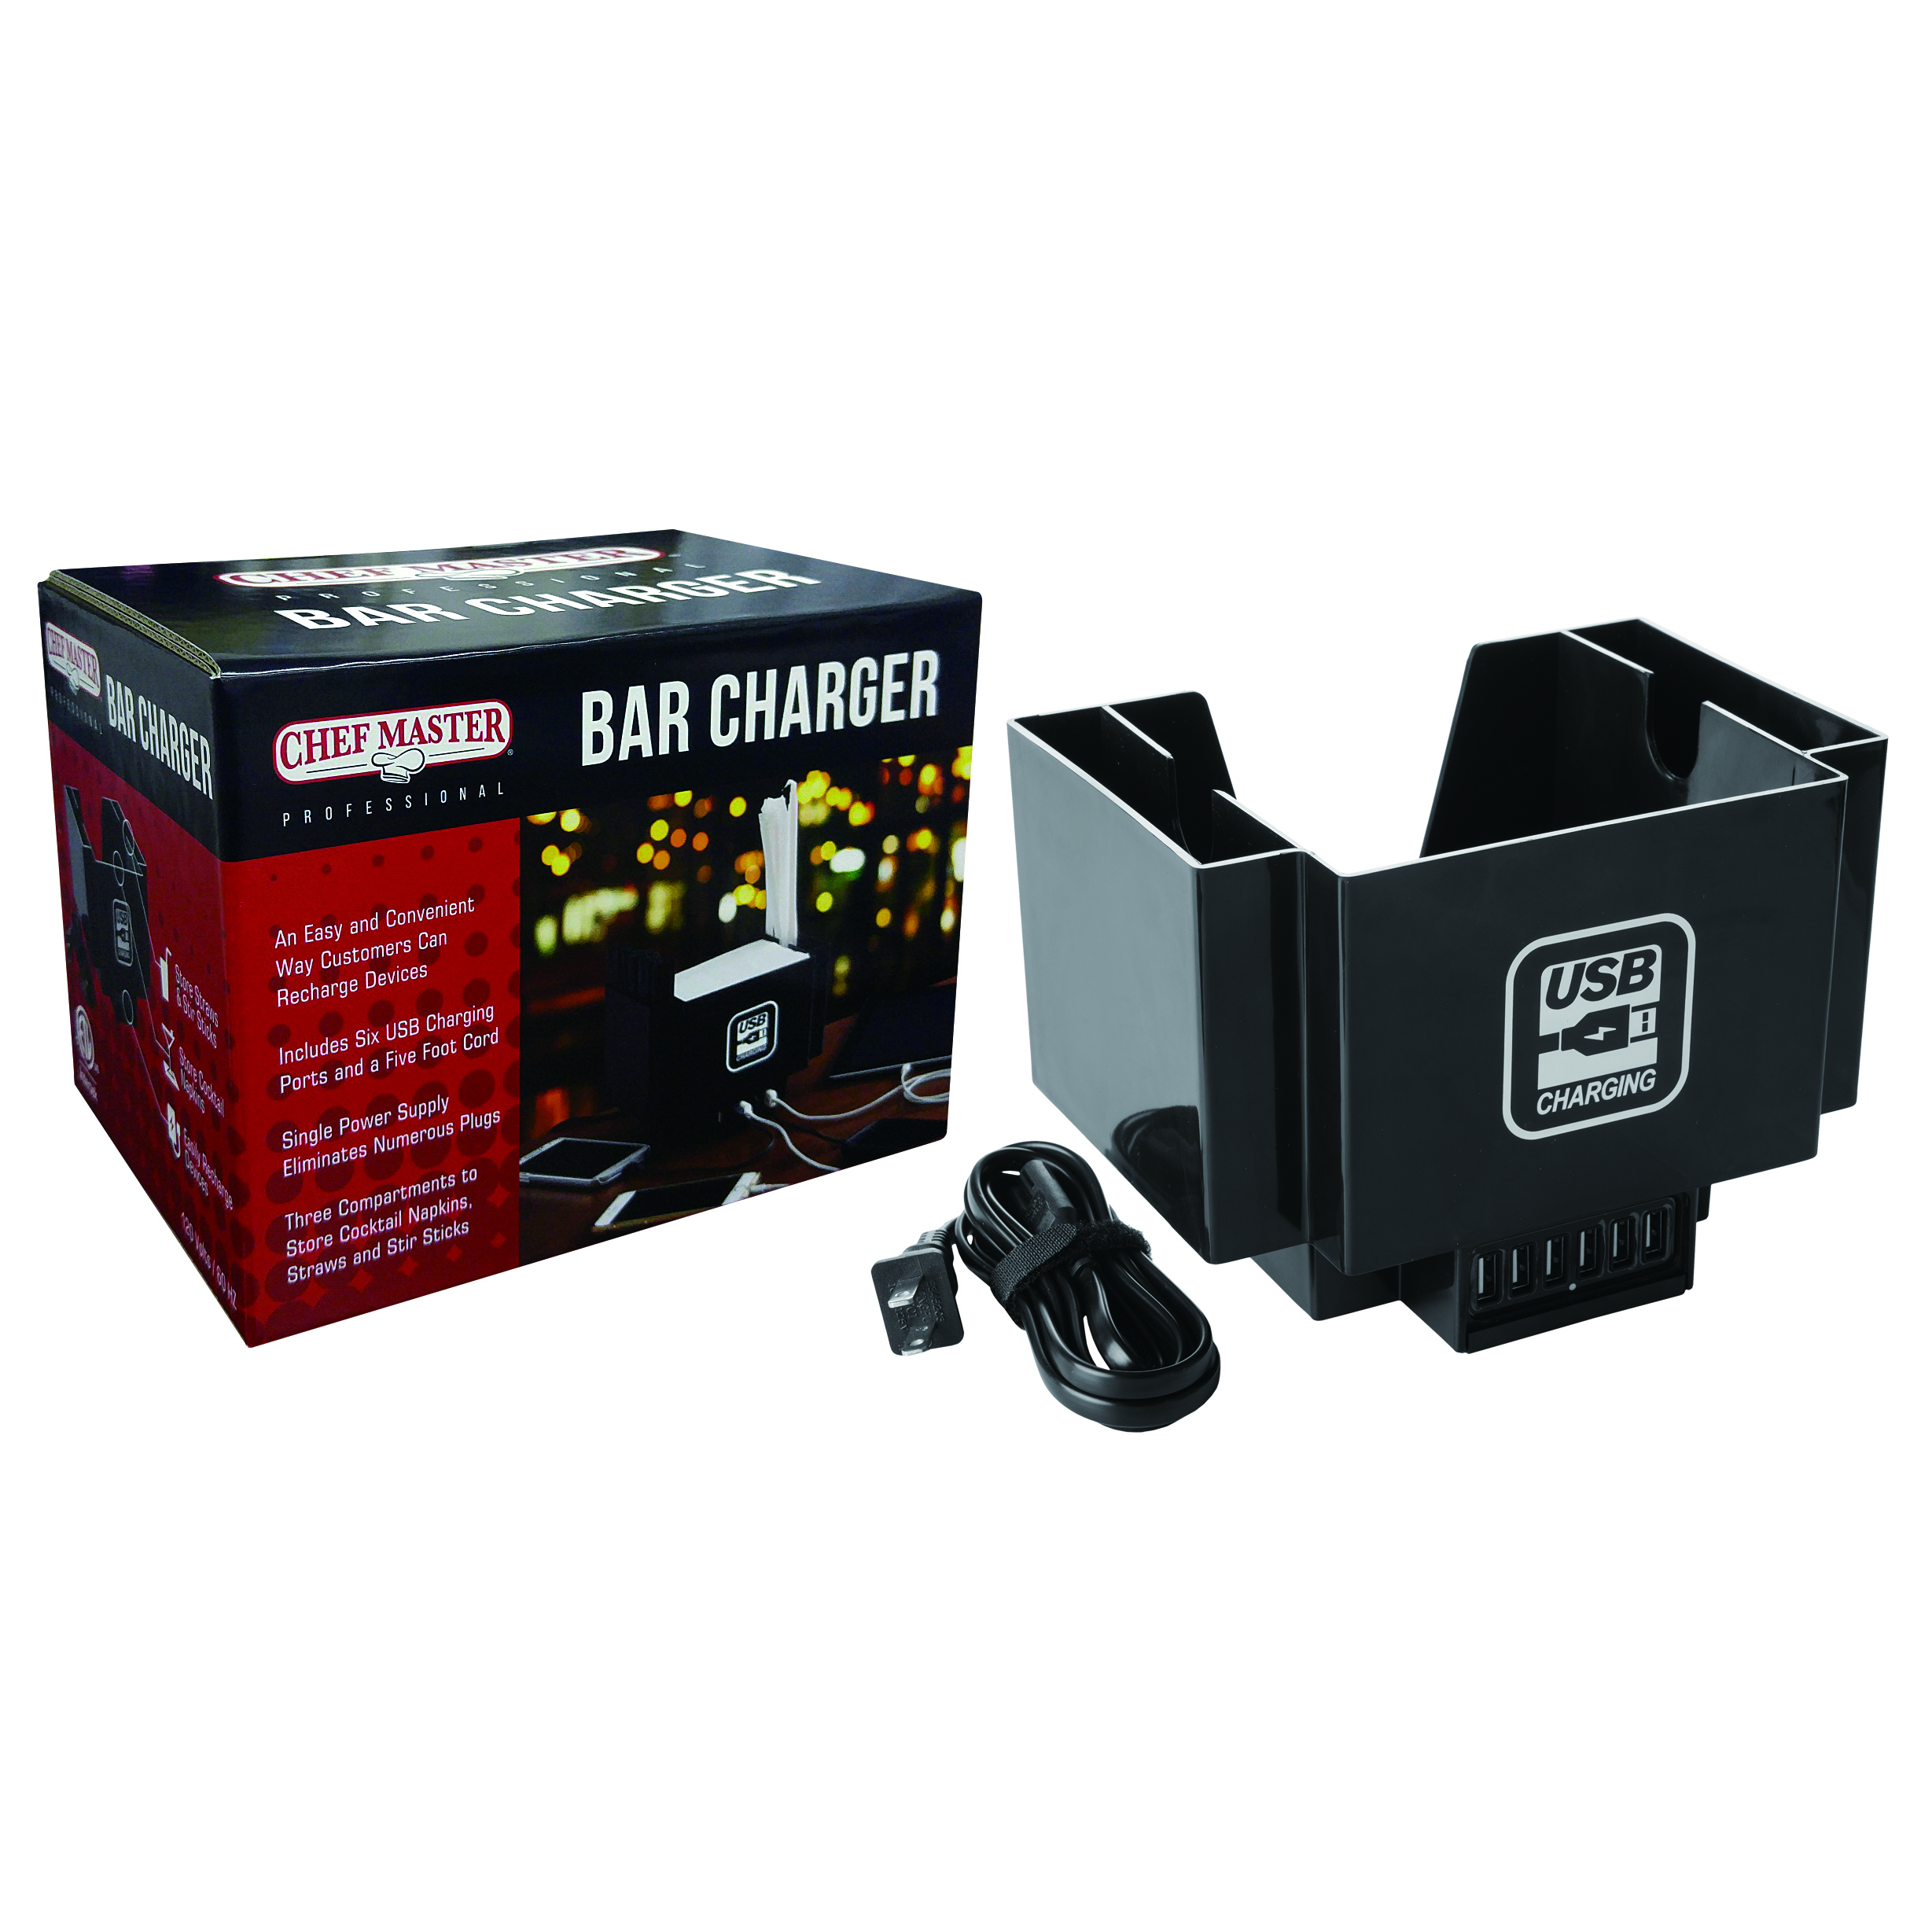 Chef Master 90029 bar caddy